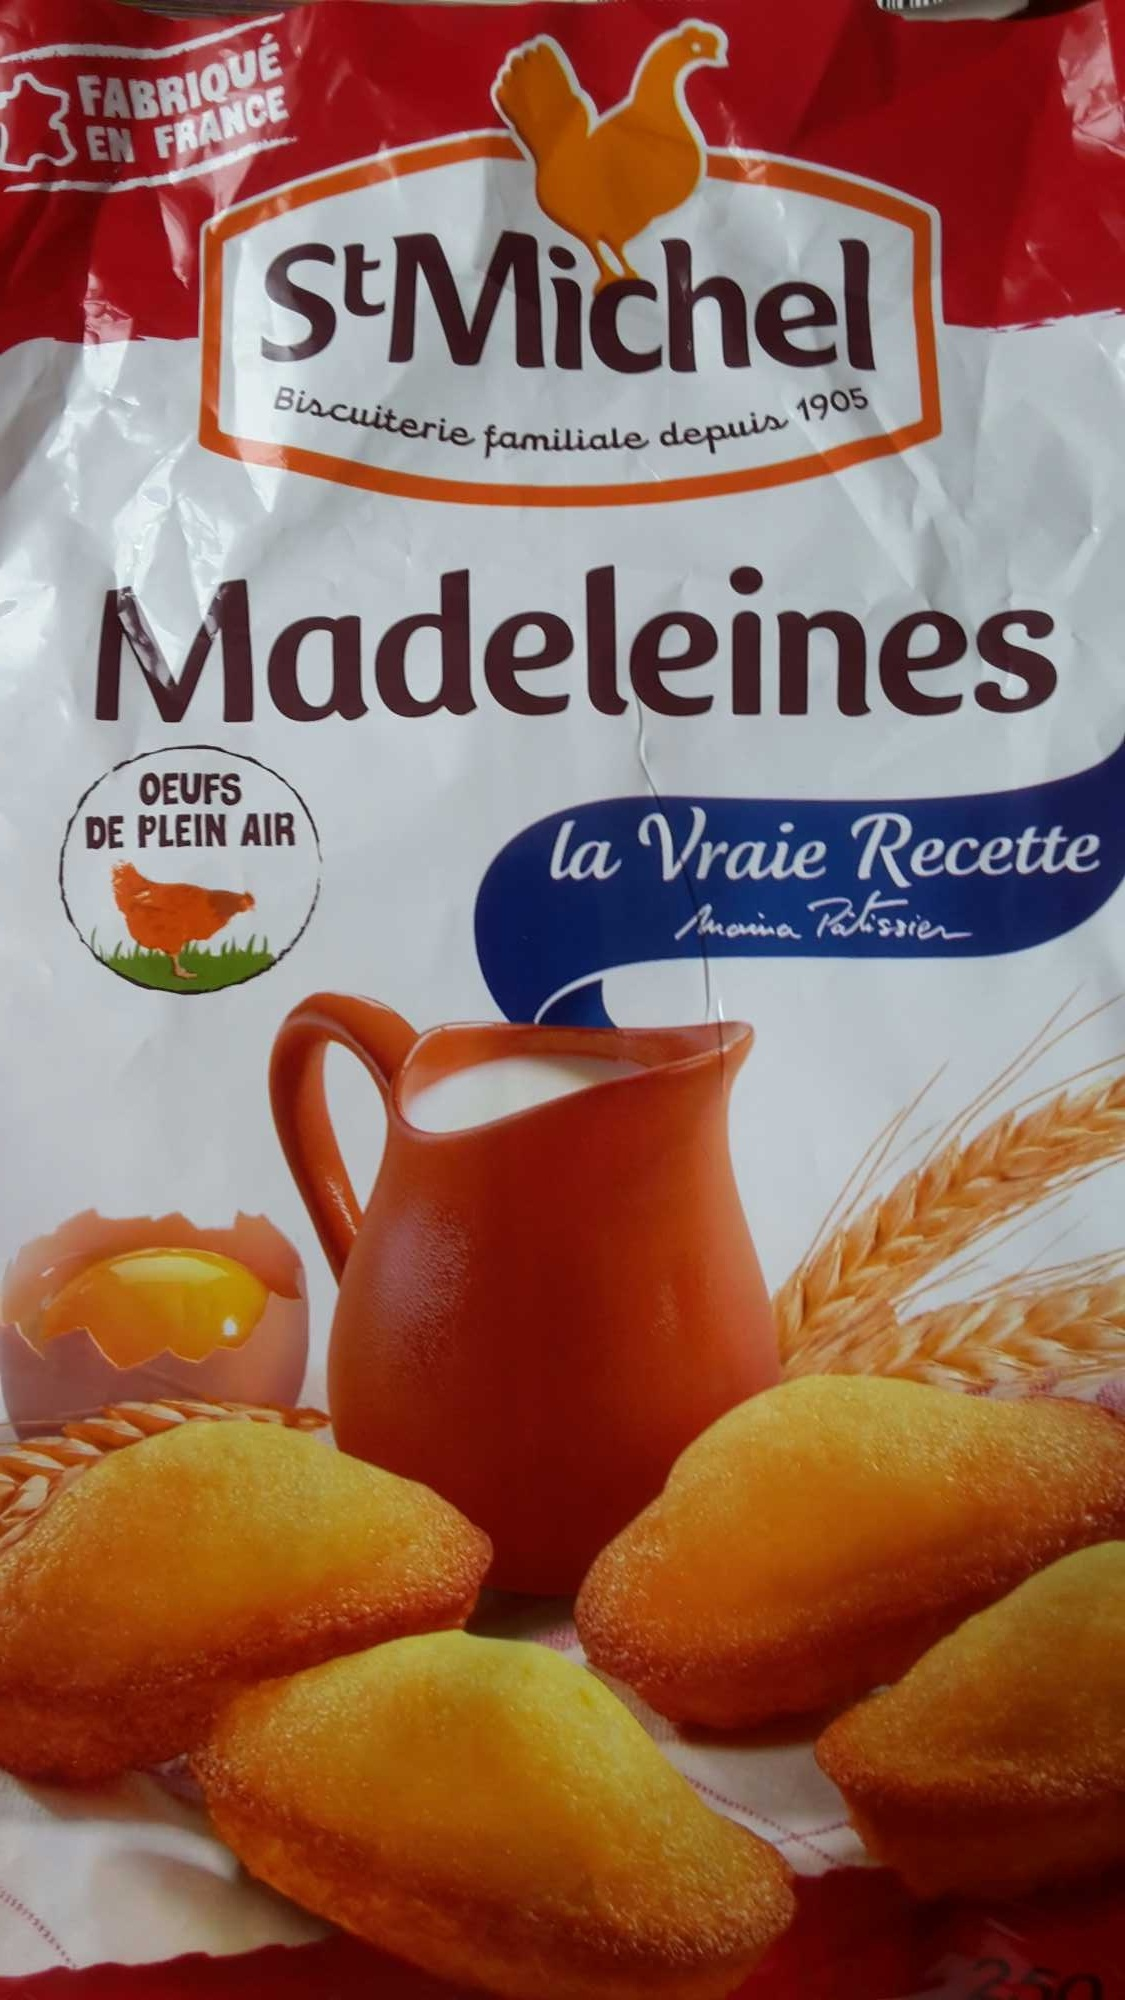 Madeleines - Product